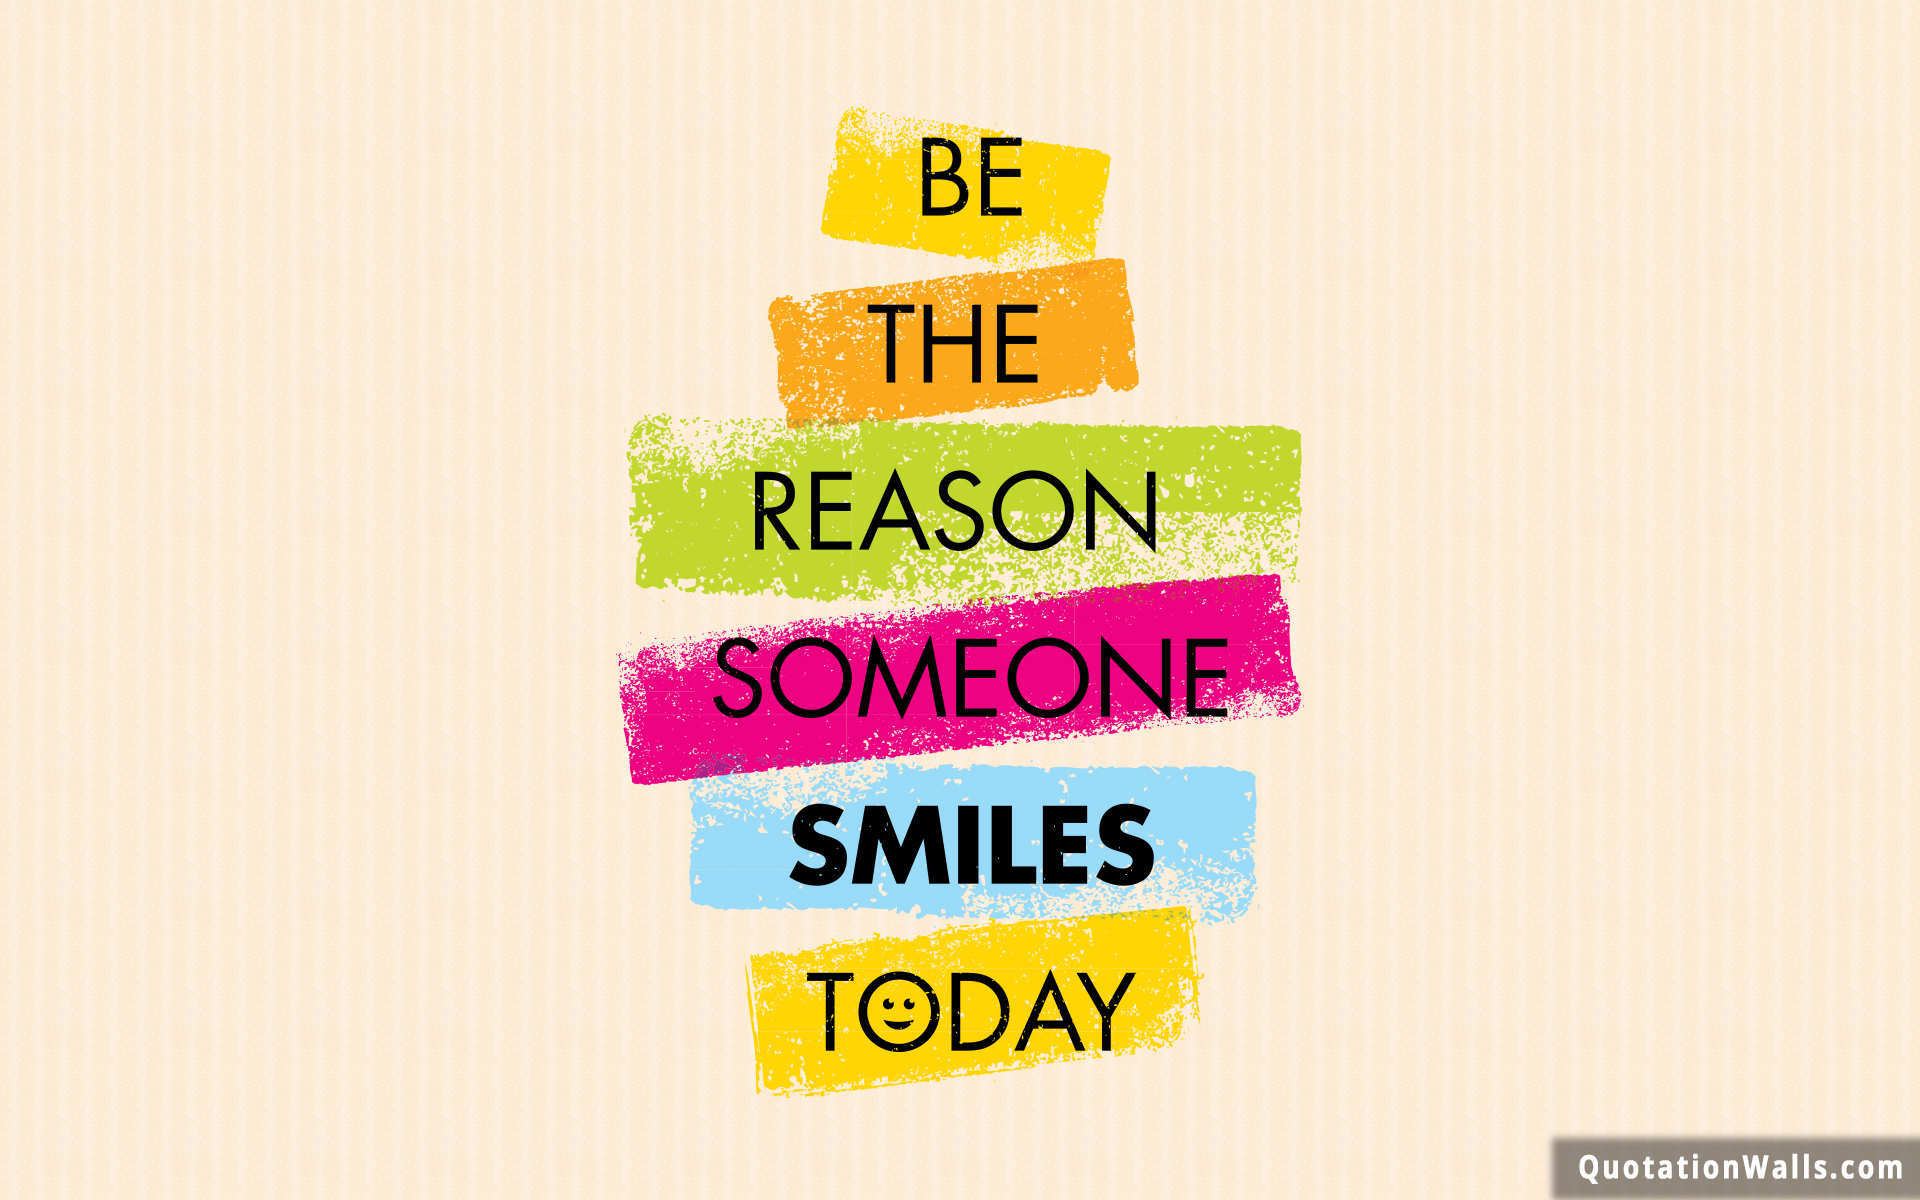 Be The Reason Wallpaper For Mobile